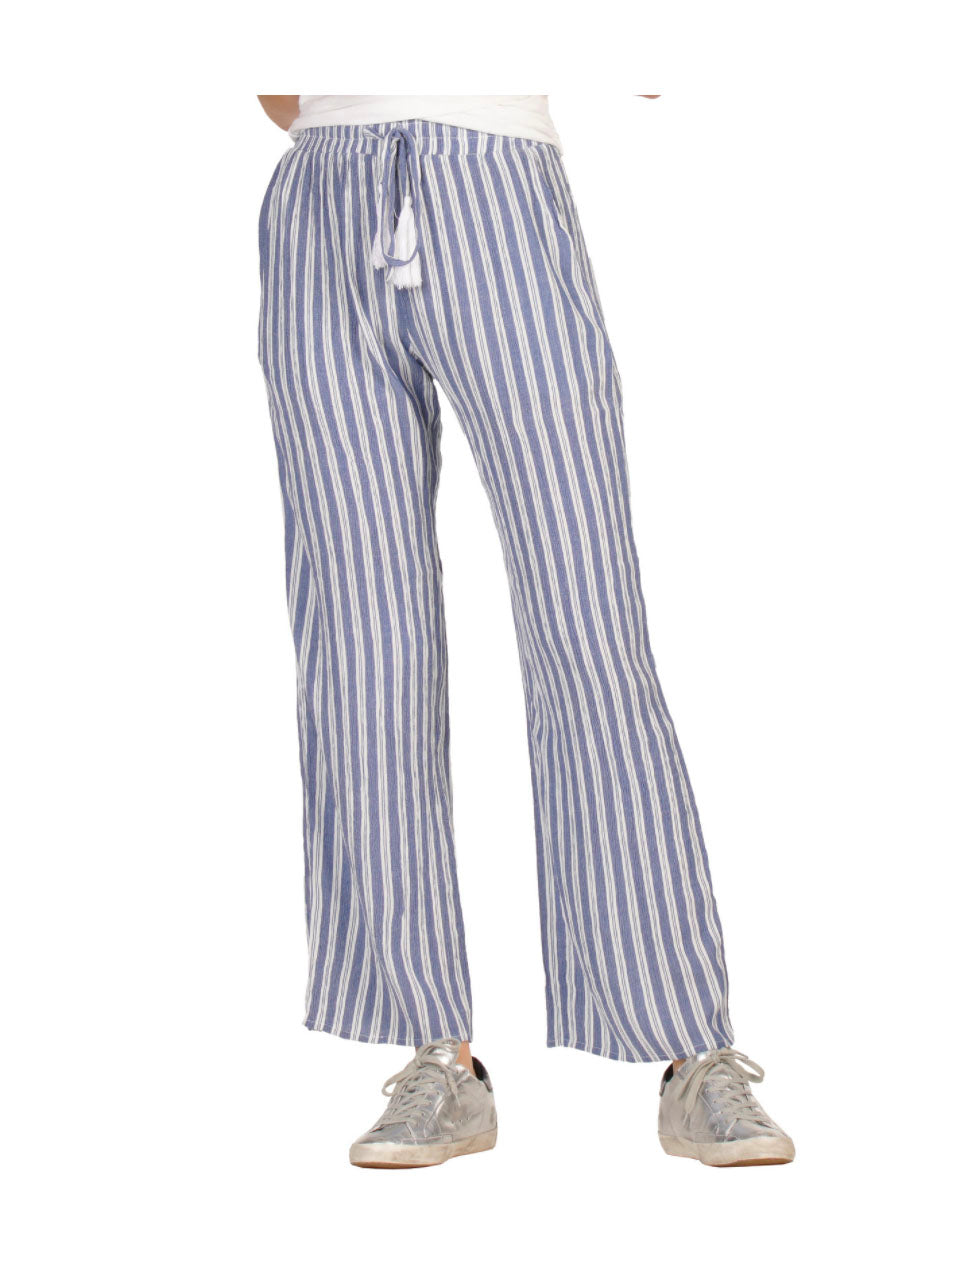 Elan Wide Leg Pant in Blue Stripes